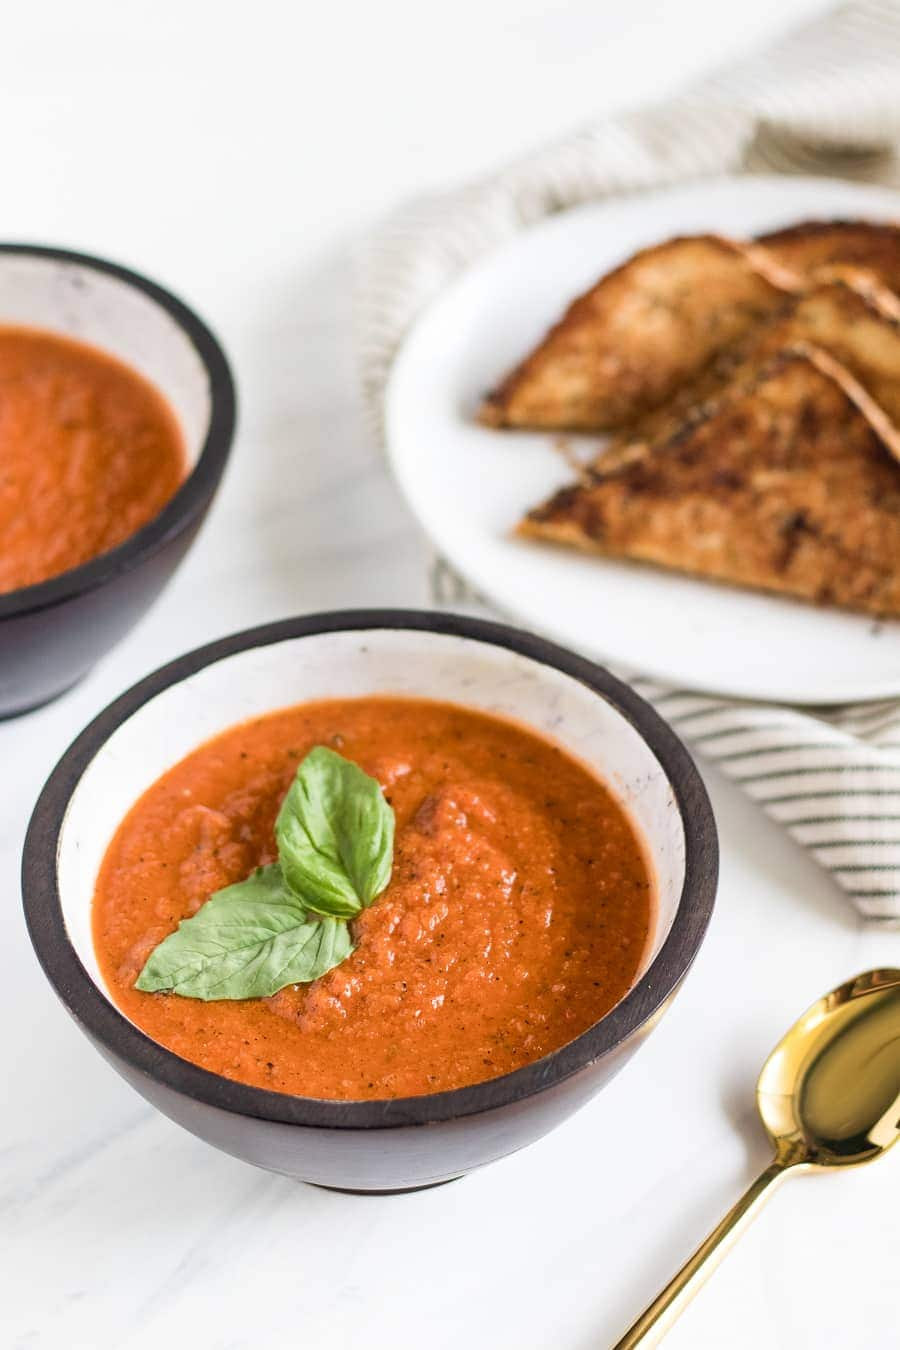 A deliciously simple homemade roasted tomato basil soup that you can enjoy all year round with a melty grilled cheese made with Irish whiskey butter!